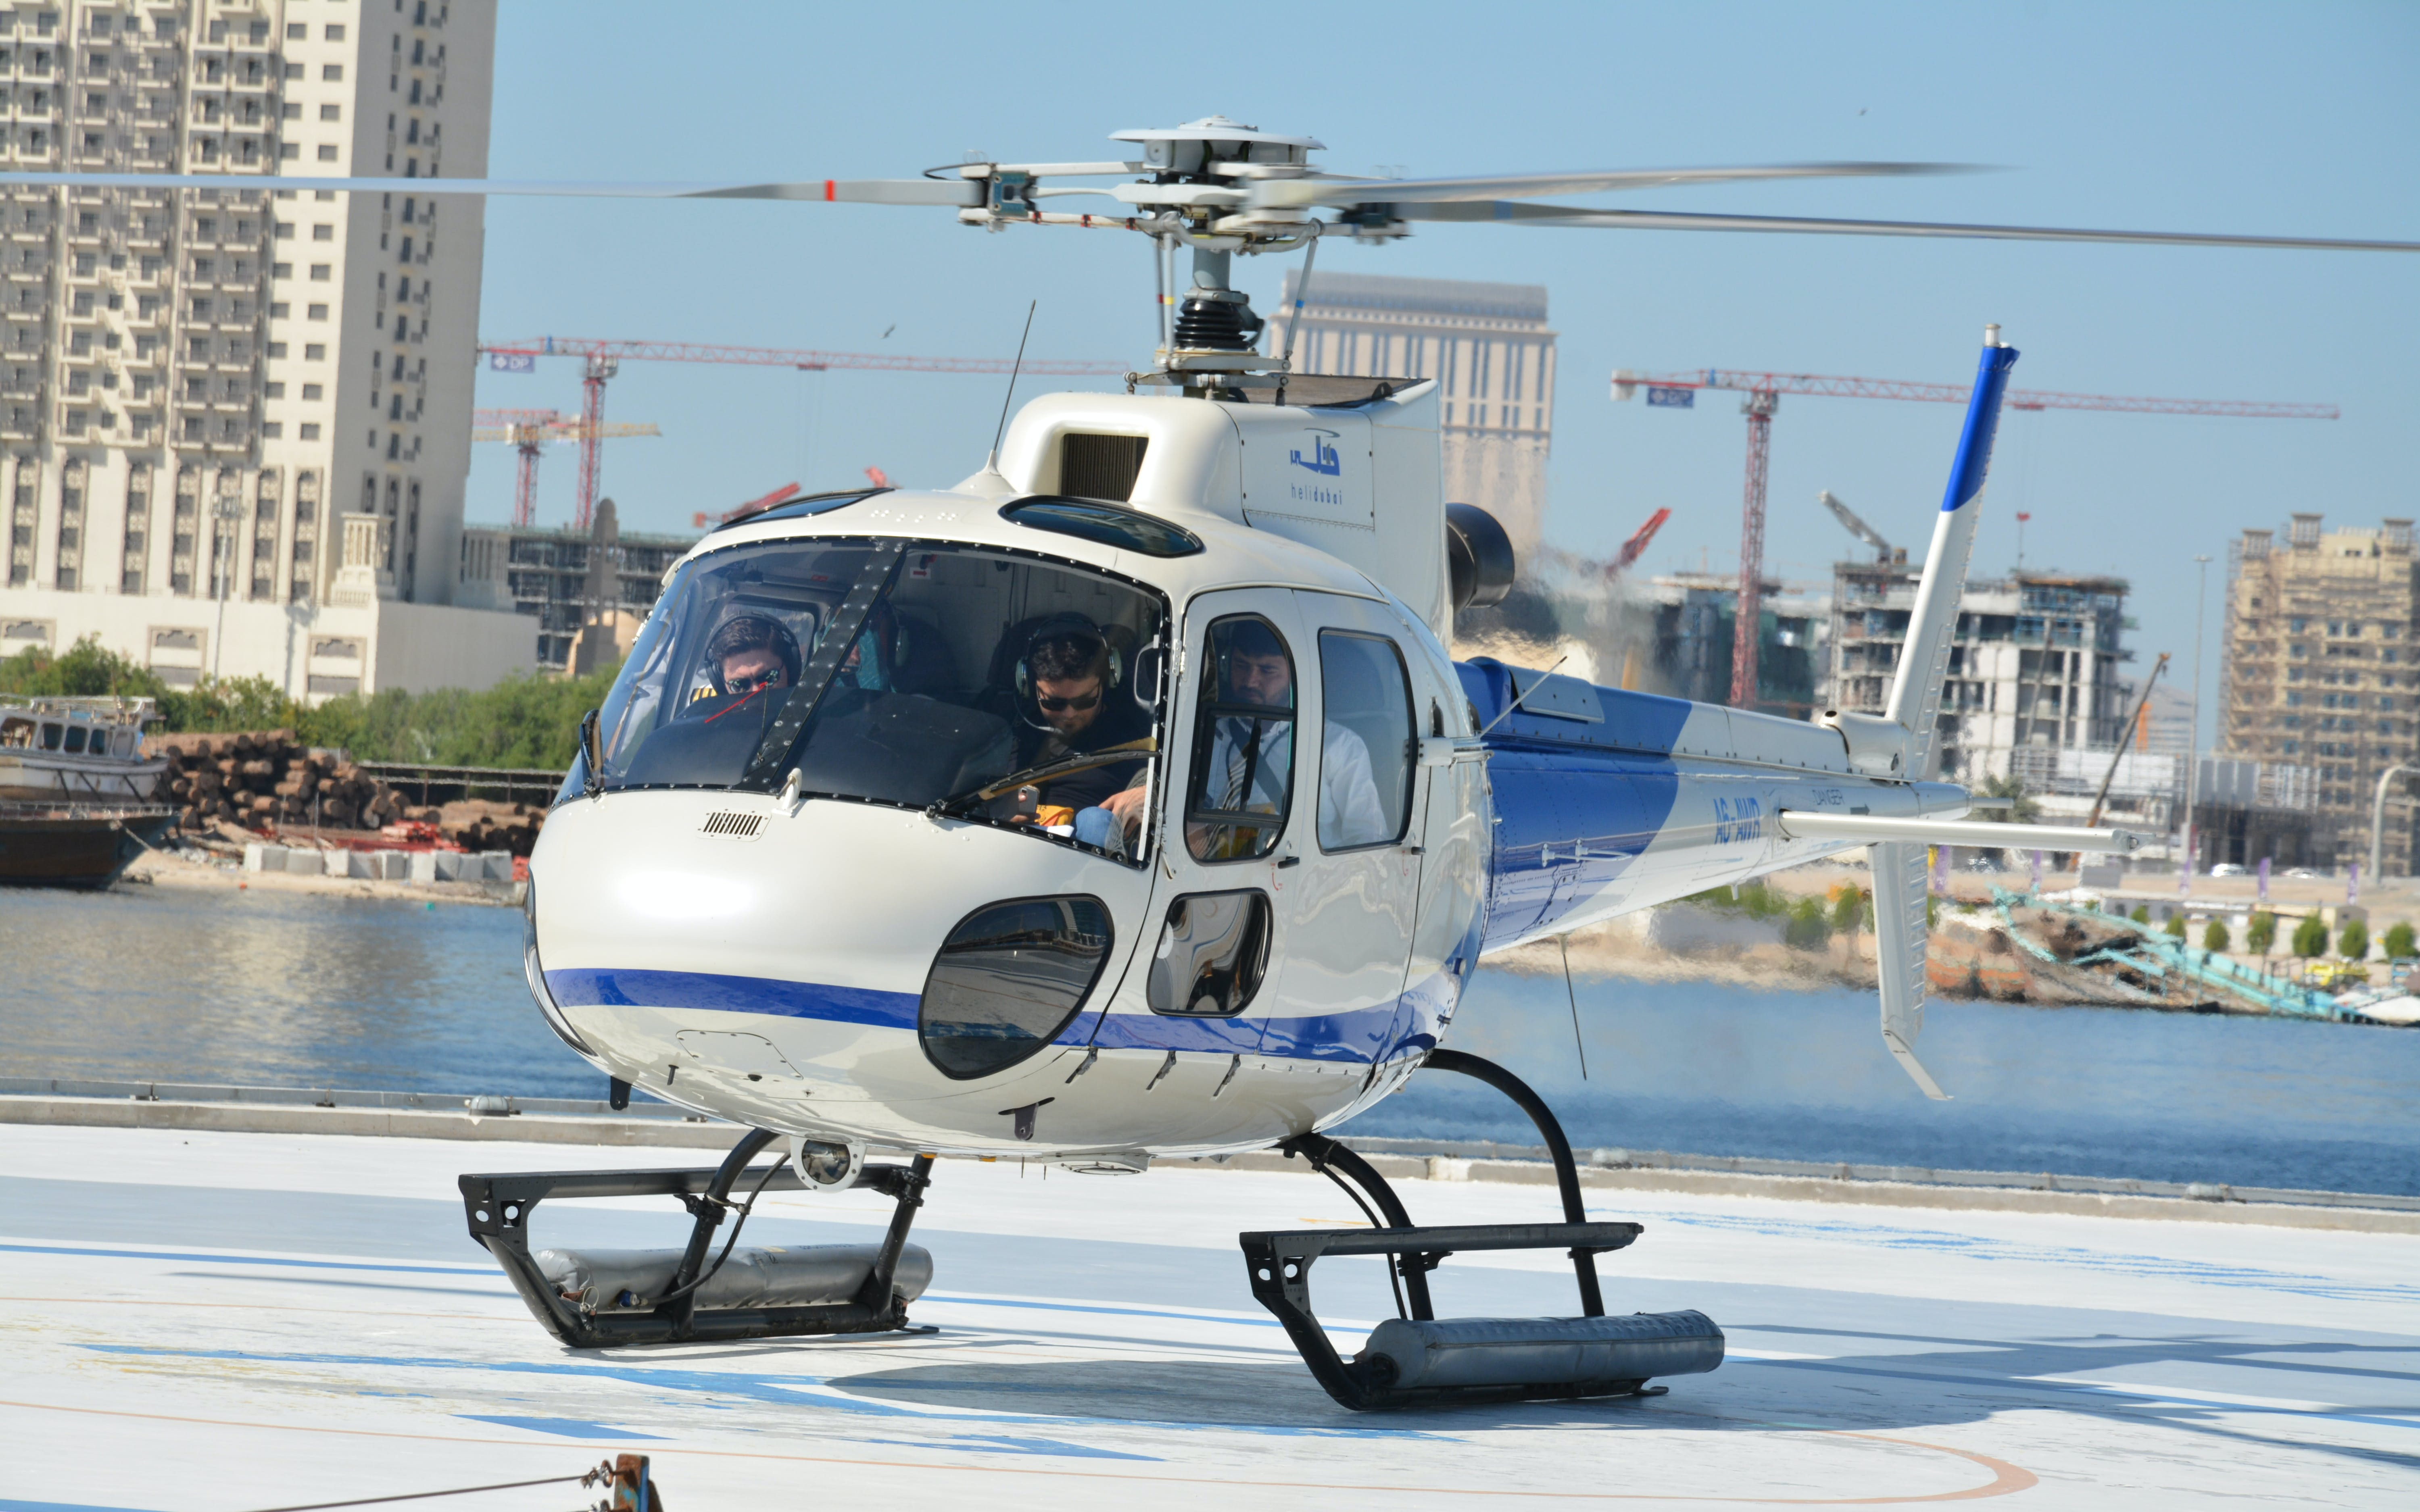 odyssey helicopter tour - 40 minutes-9